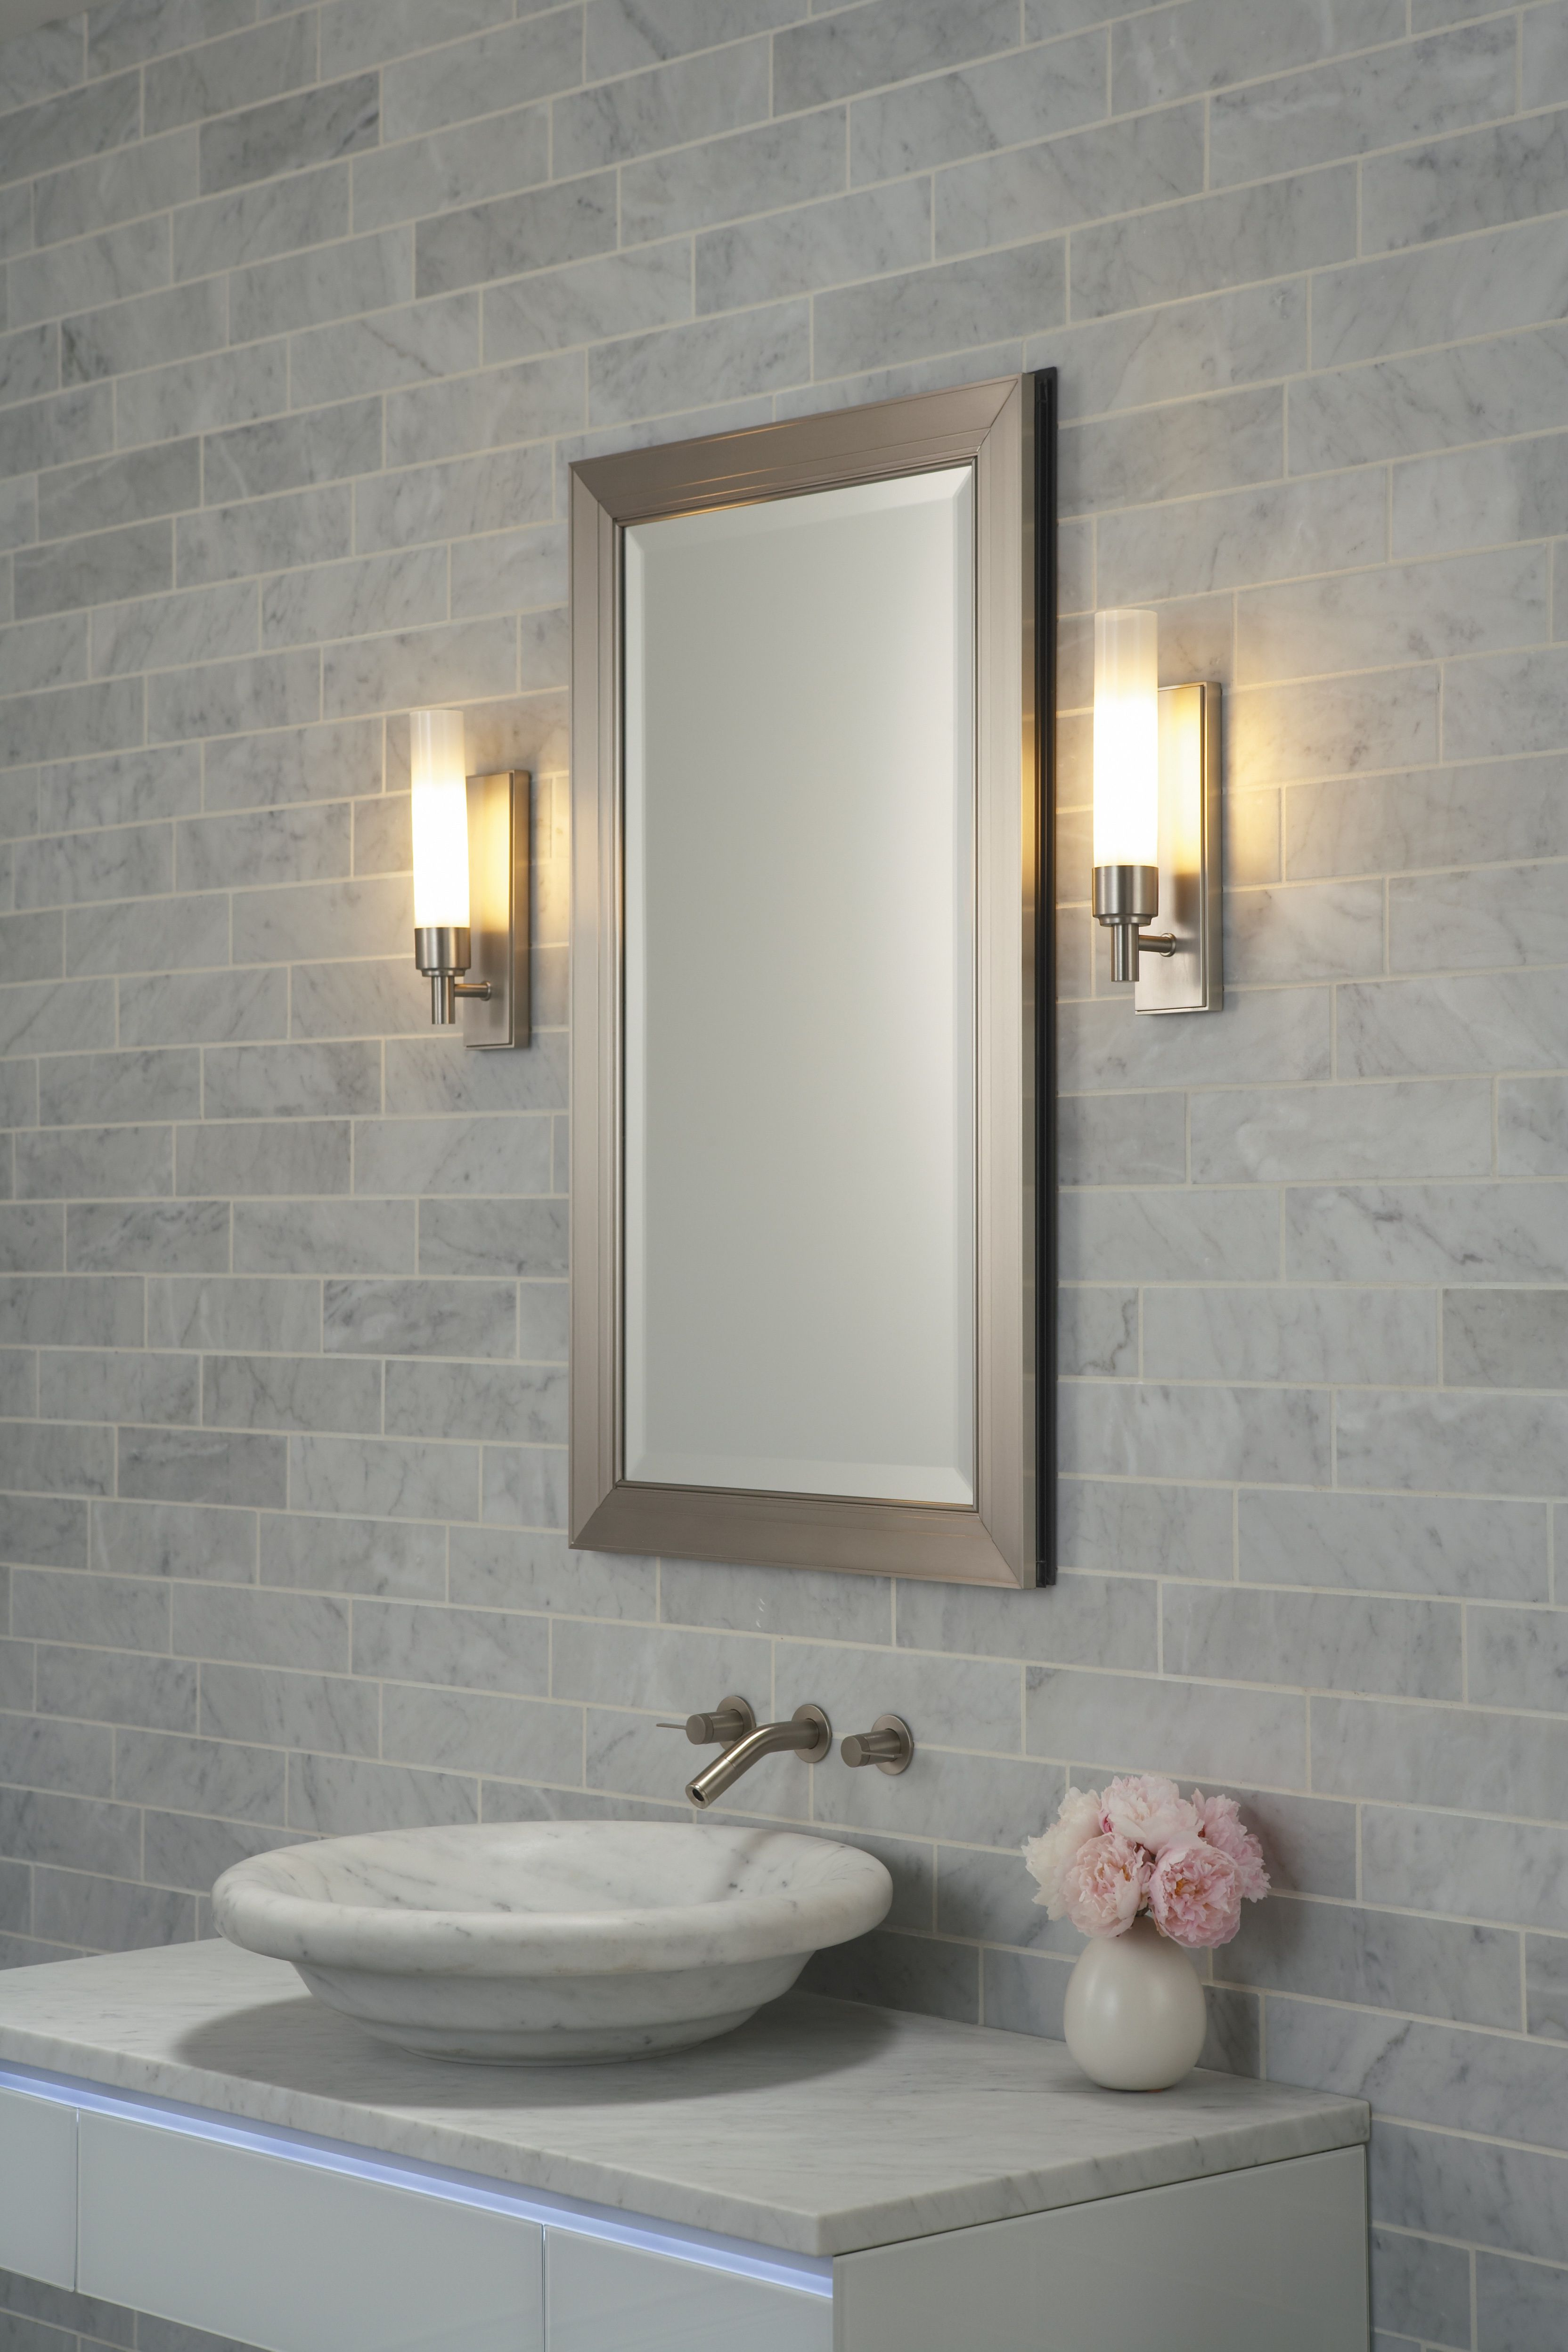 Best And Newest Lighting Ideas, Brushed Nickel Wall Sconcess Beside Of Metal Frame Regarding Brushed Nickel Wall Mirrors (View 8 of 14)